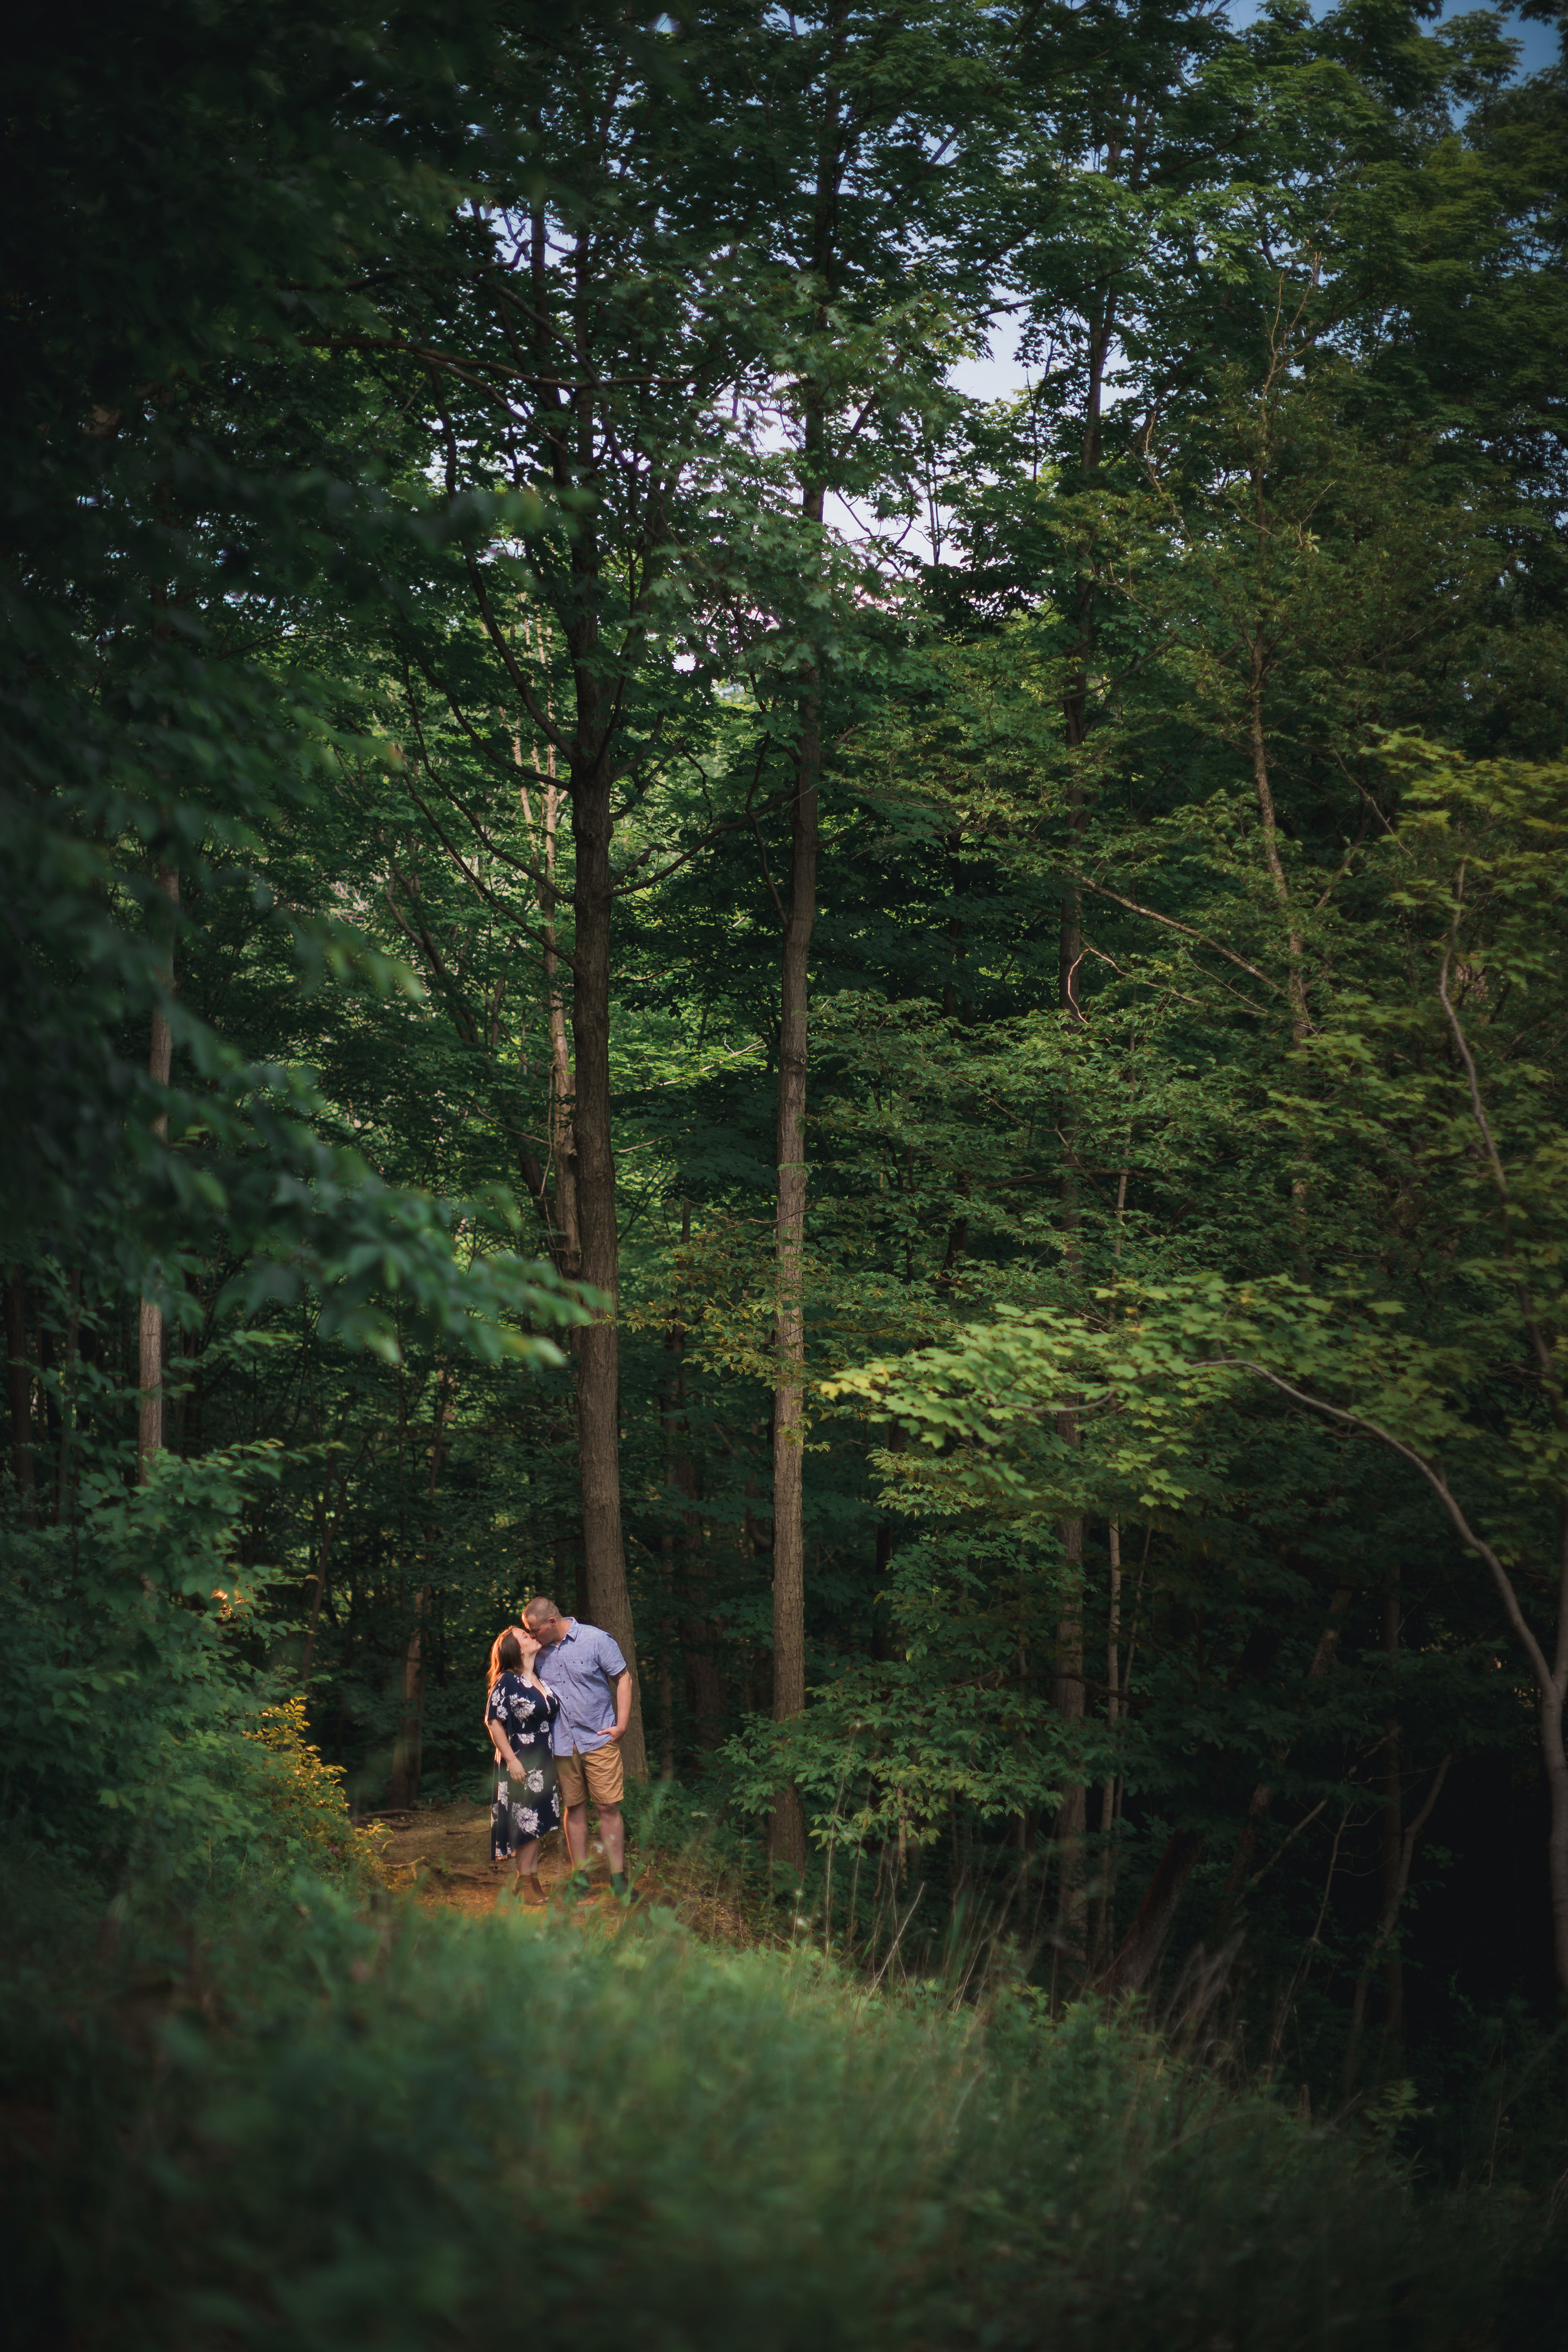 20180623_lauren_and_justin_engagement_55_5R3A0928.jpg